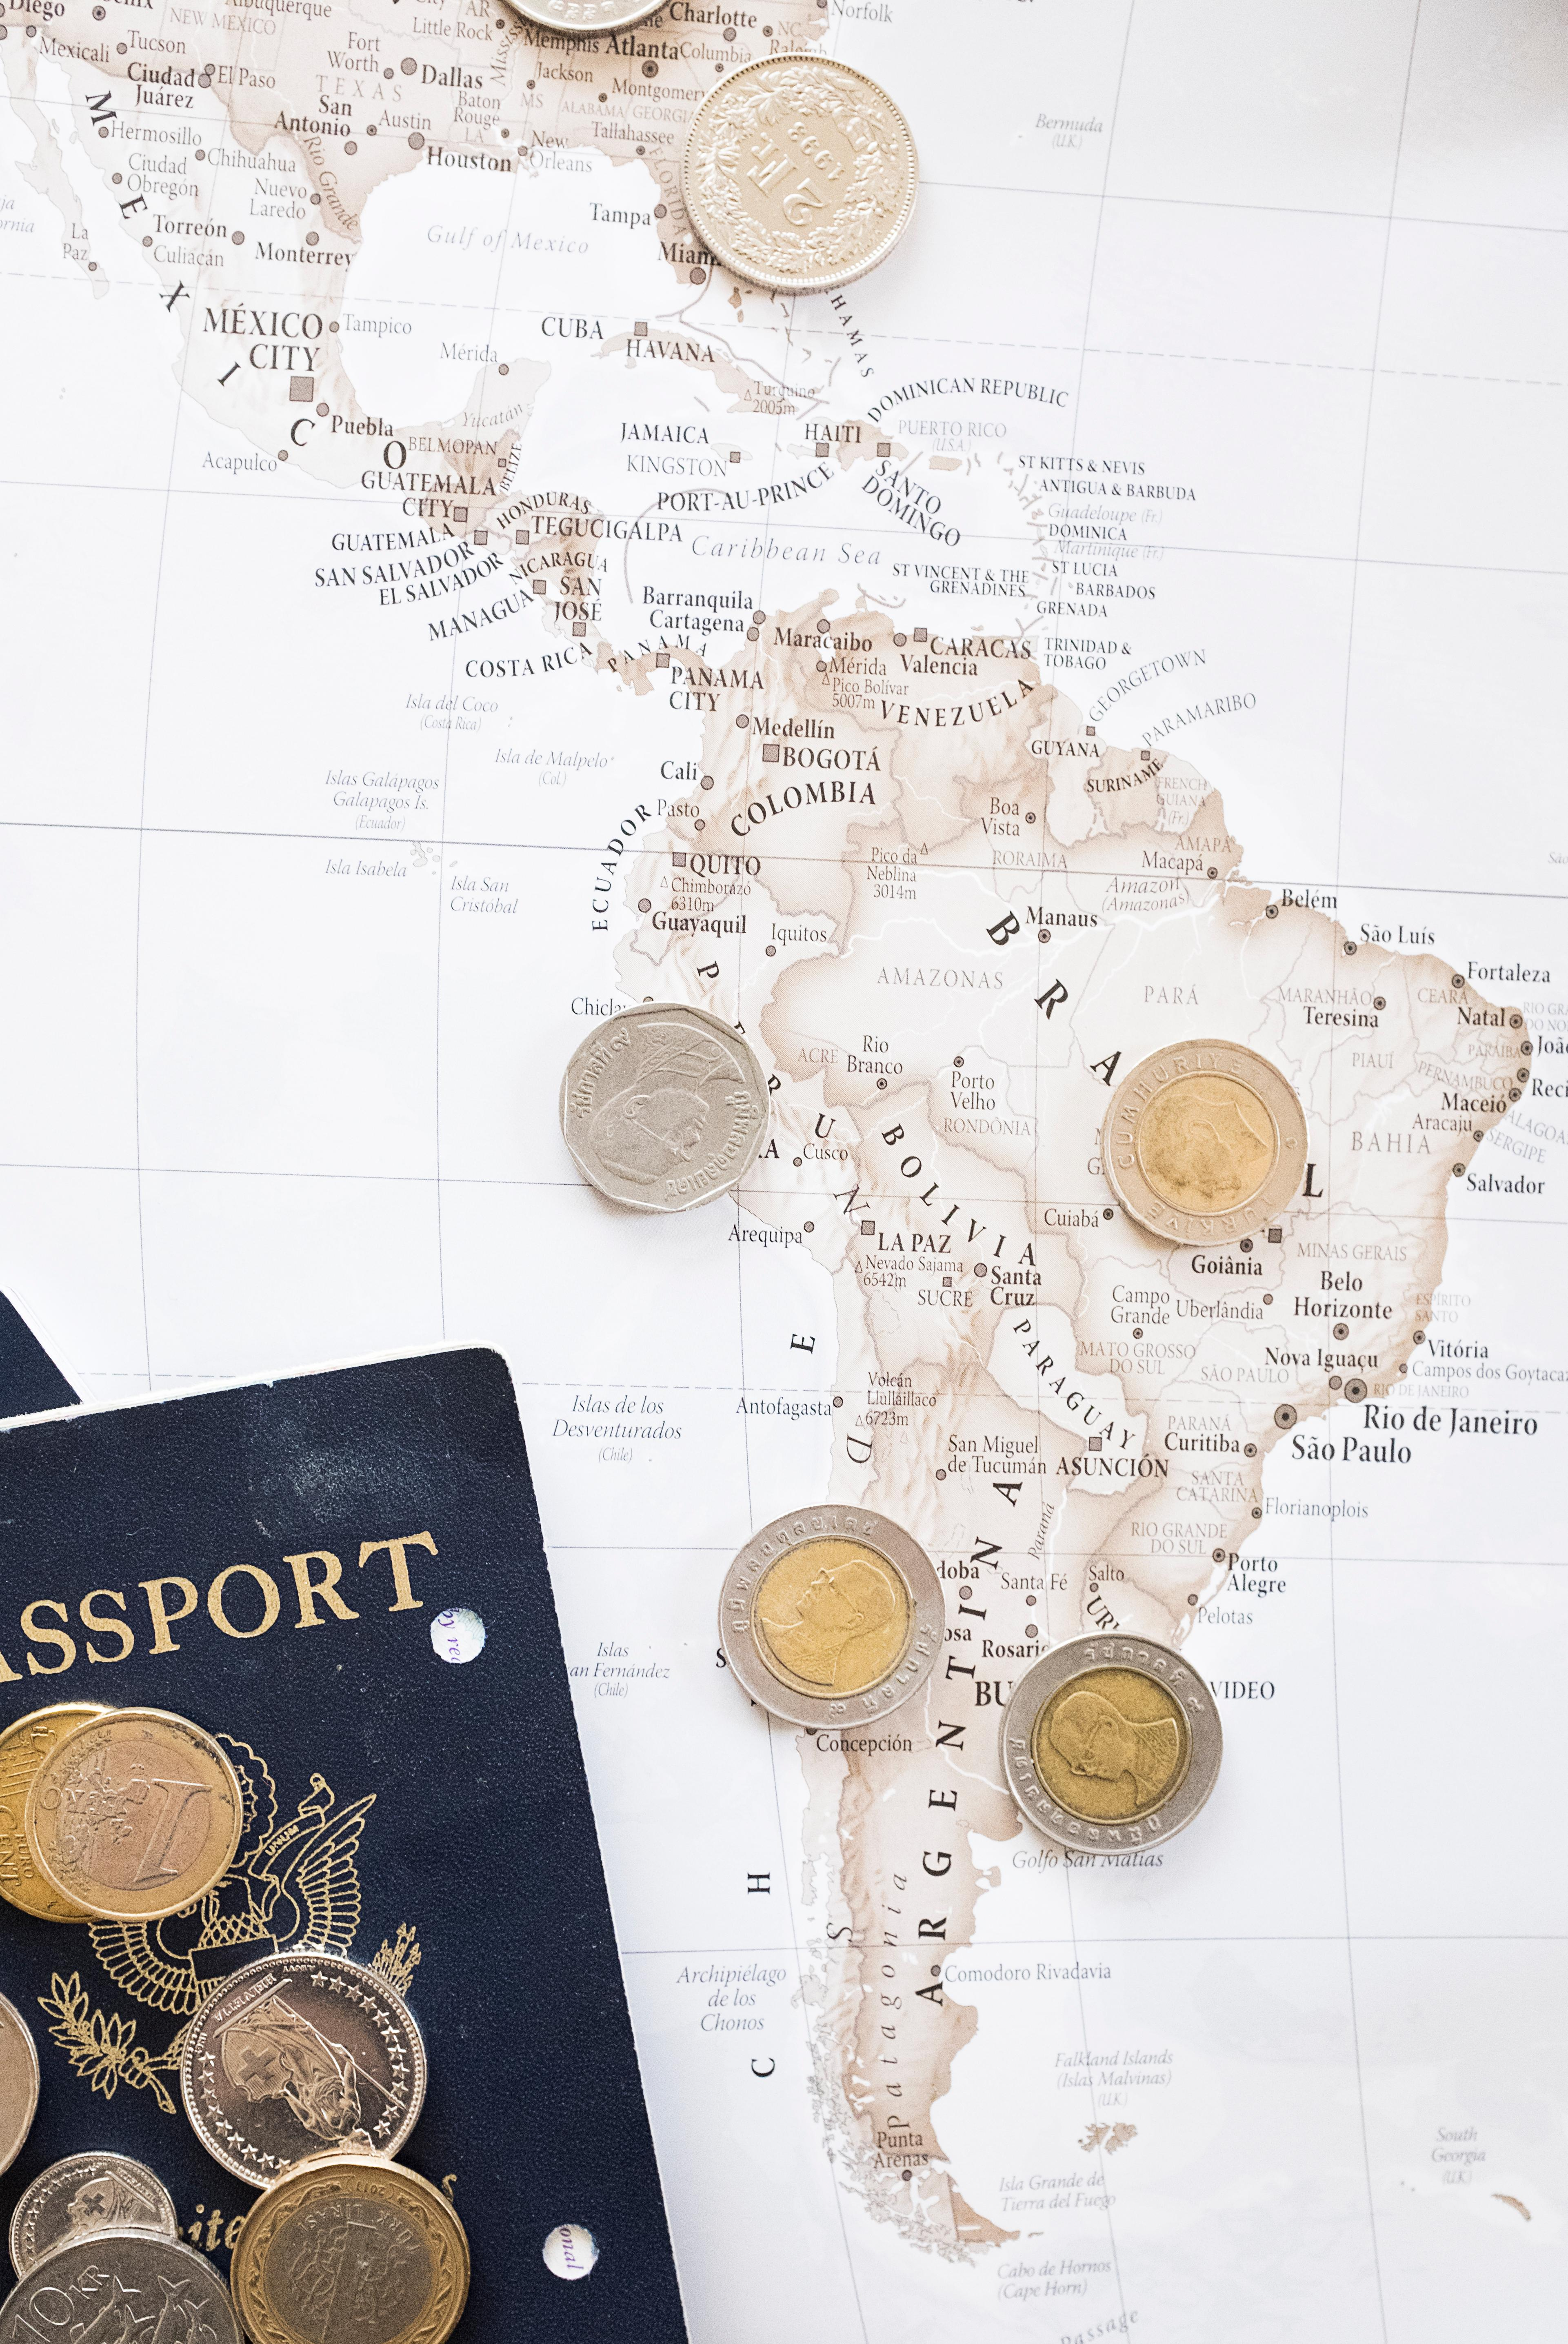 Send out an invite and ask your guests to bring their passport and any currency they still have left from an old trip abroad. No need to explain anything more.{ } (Image: Ashley Hafstead)